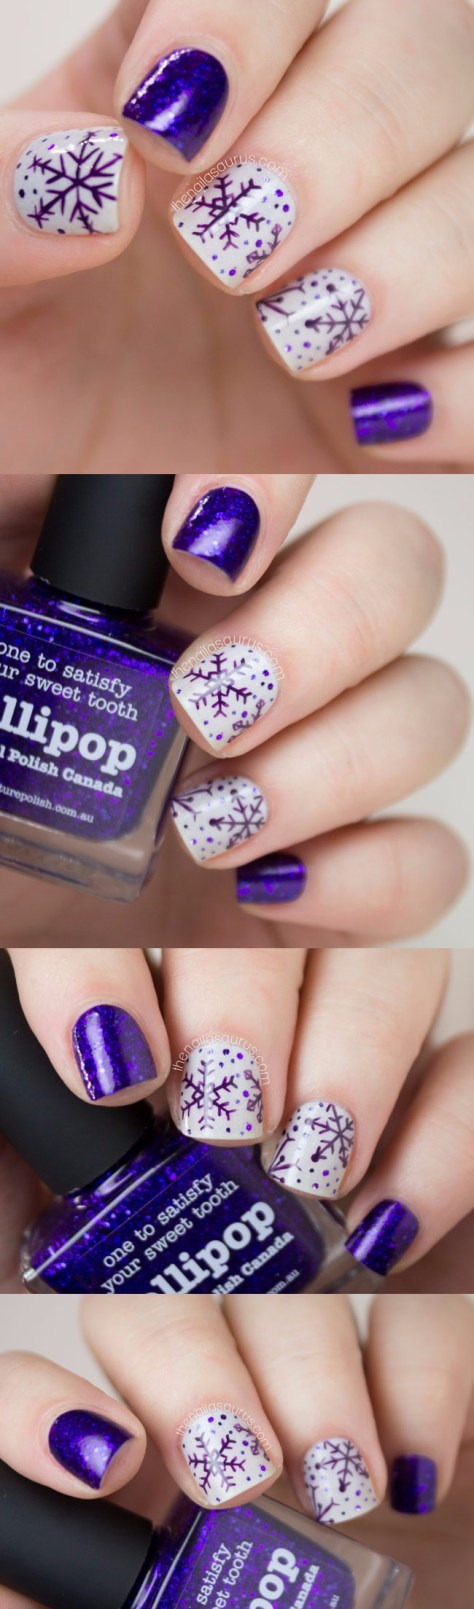 Purple Snowflake Nail